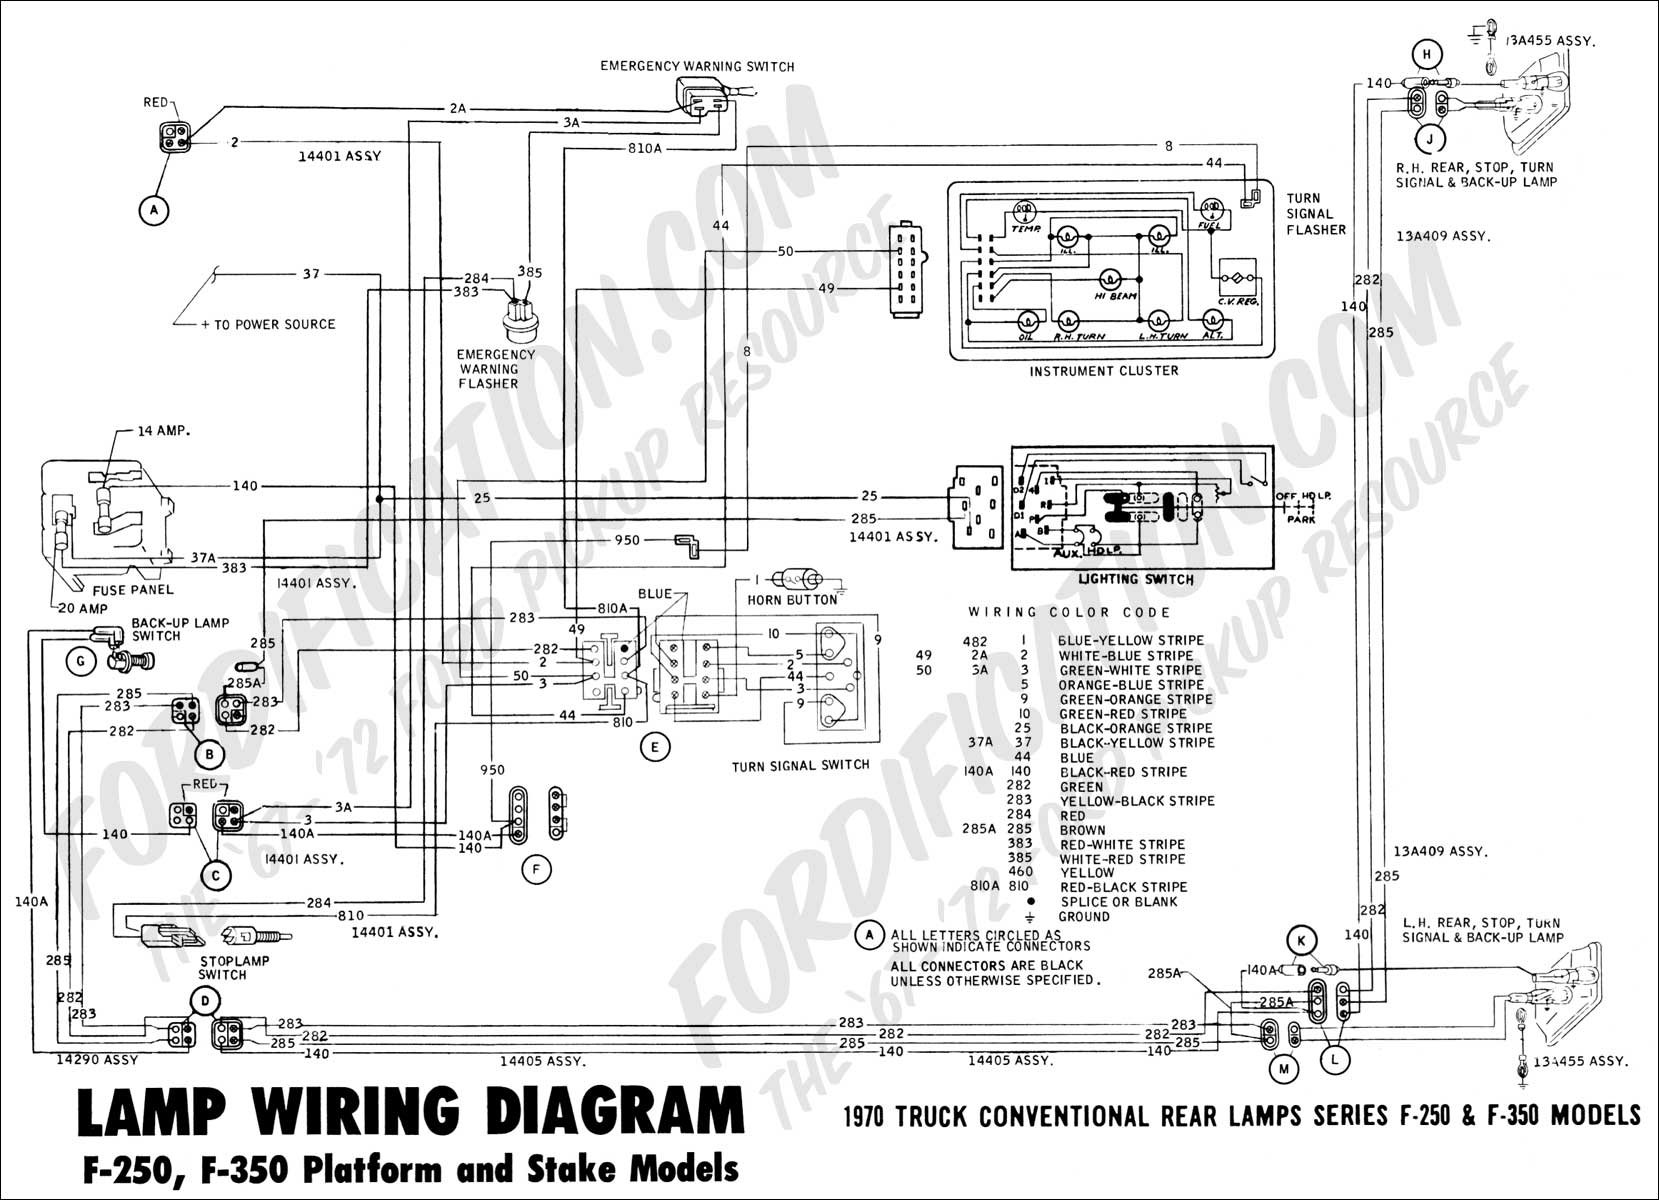 1997 Ford F 150 4x4 Wiring Diagram Data For 1999 Ranger Ignition Switch Library 1998